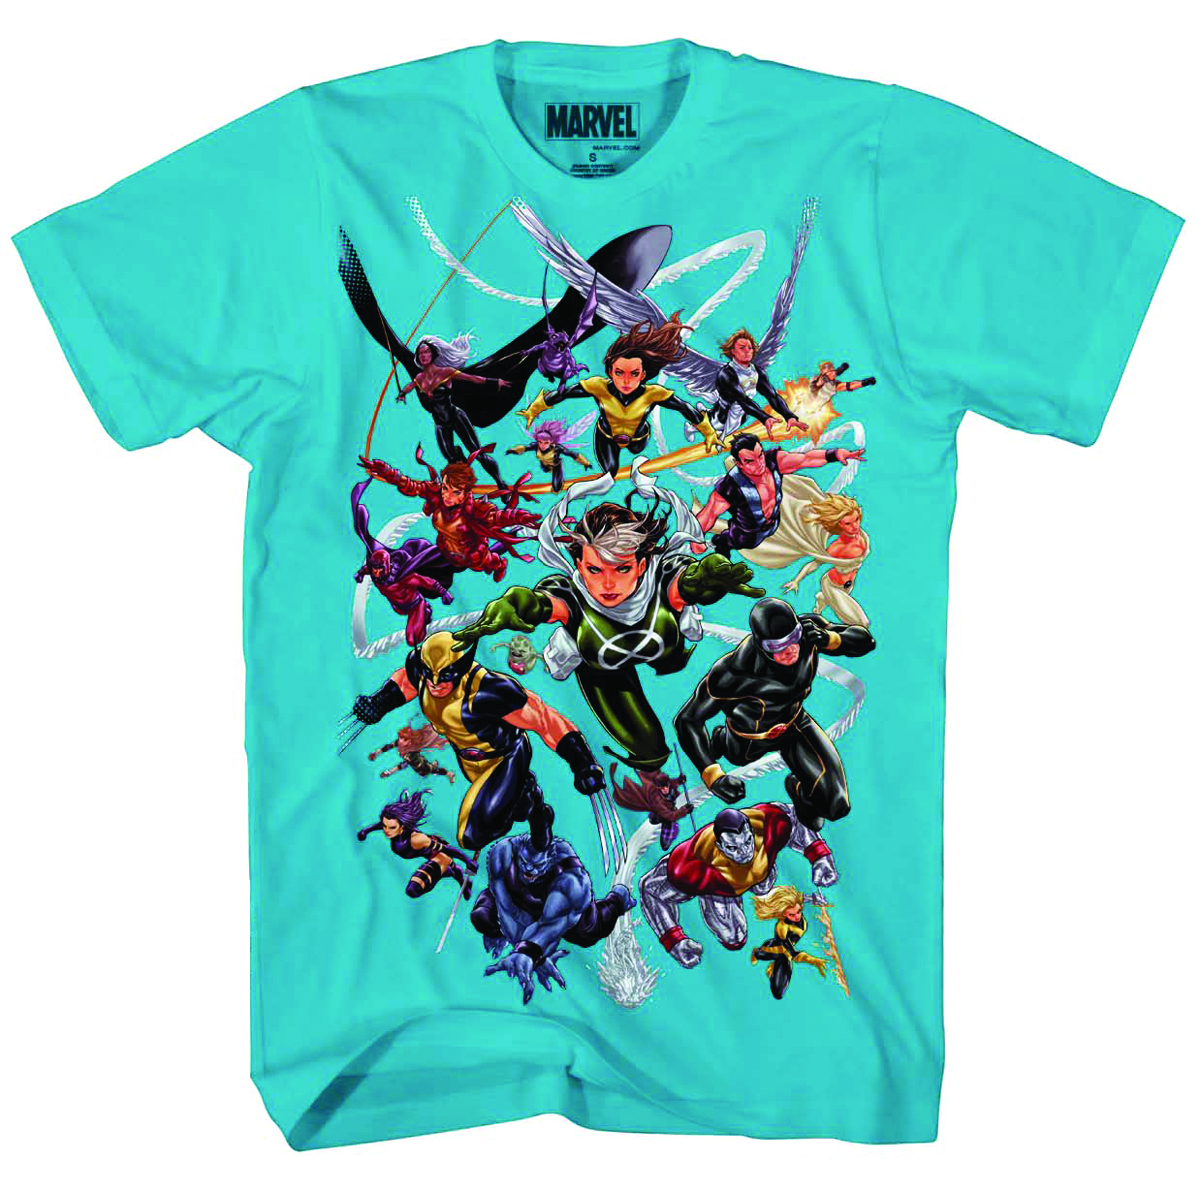 X-MEN FLYING FORWARD PX TURQ T/S SM